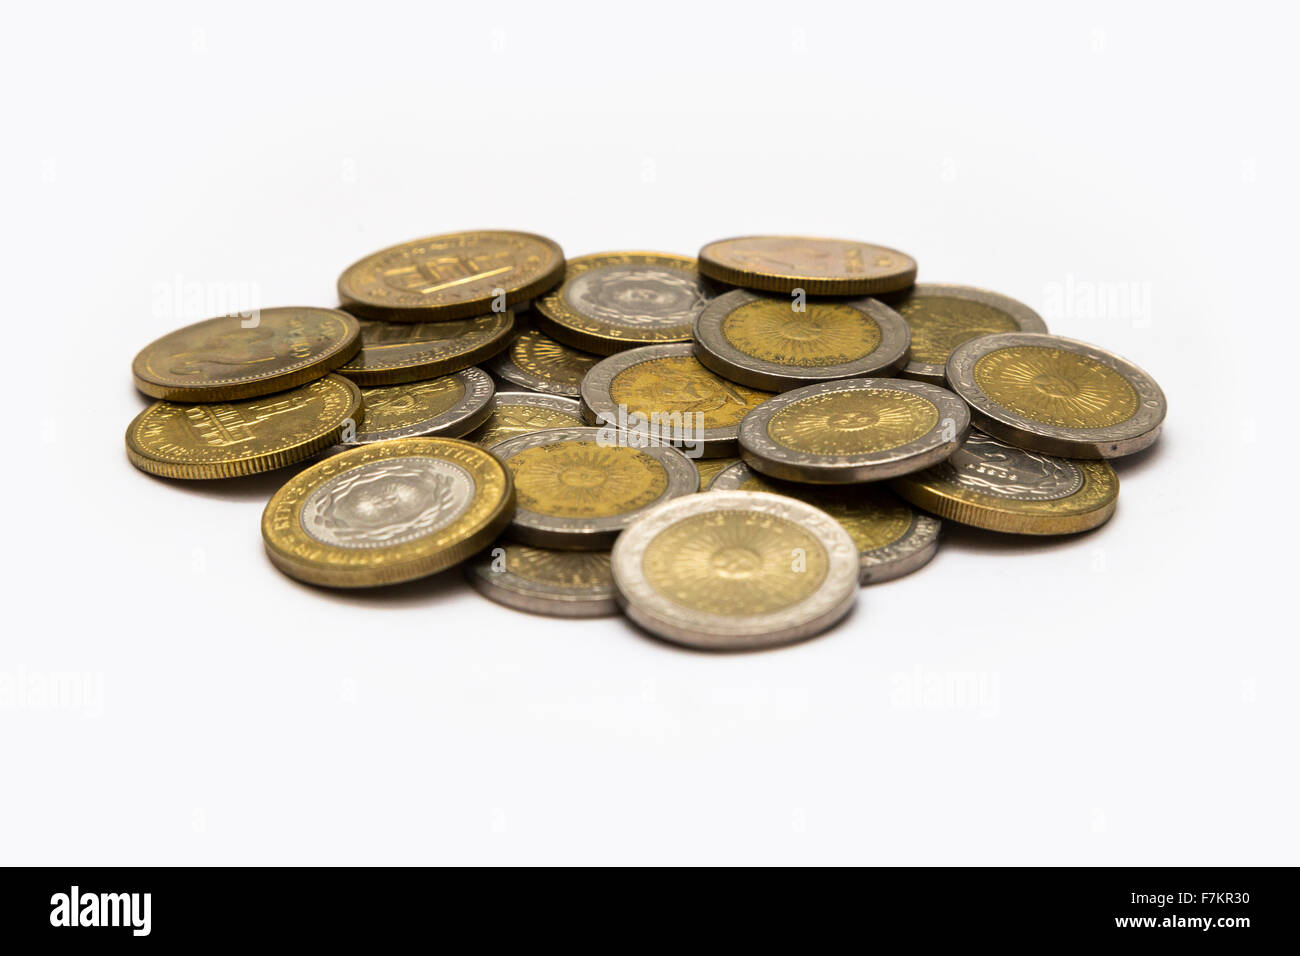 Many Argentine coins - Stock Image